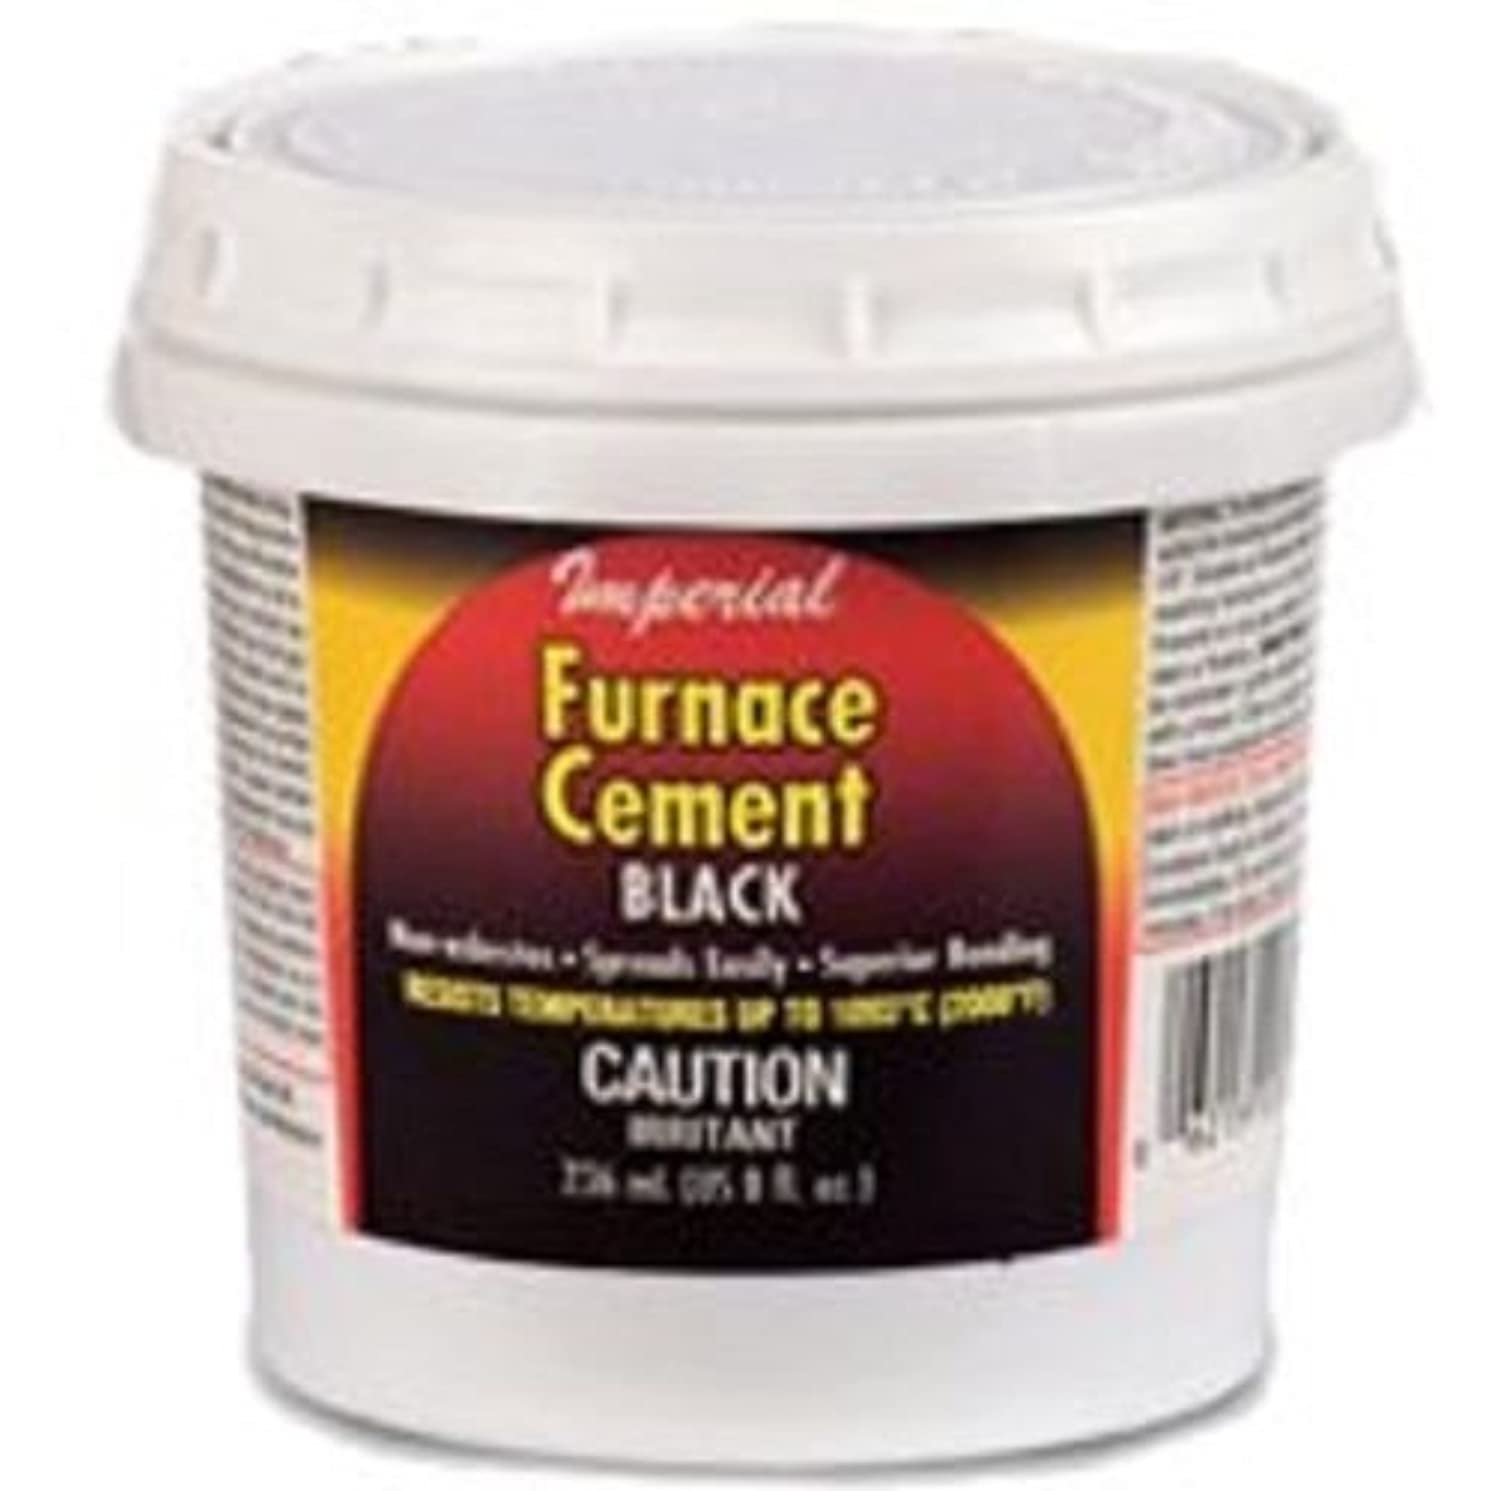 New Imperial Kk0304 32oz High Heat Stove Fireplace Black Furnace Cement 5385653